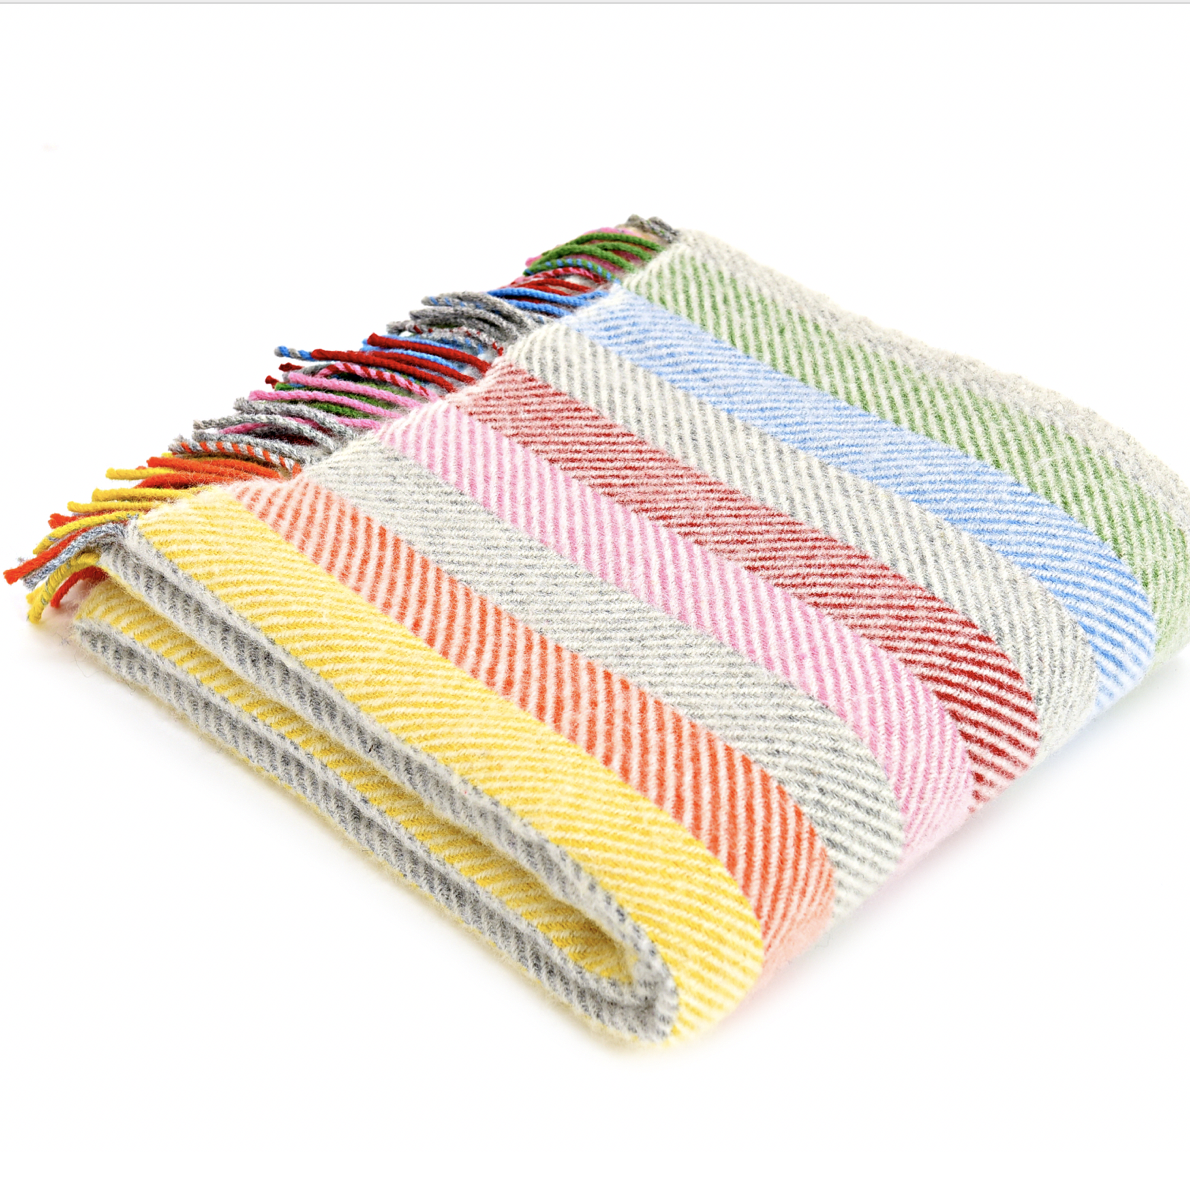 'Enfys' Rainbow Pure New Wool Blanket